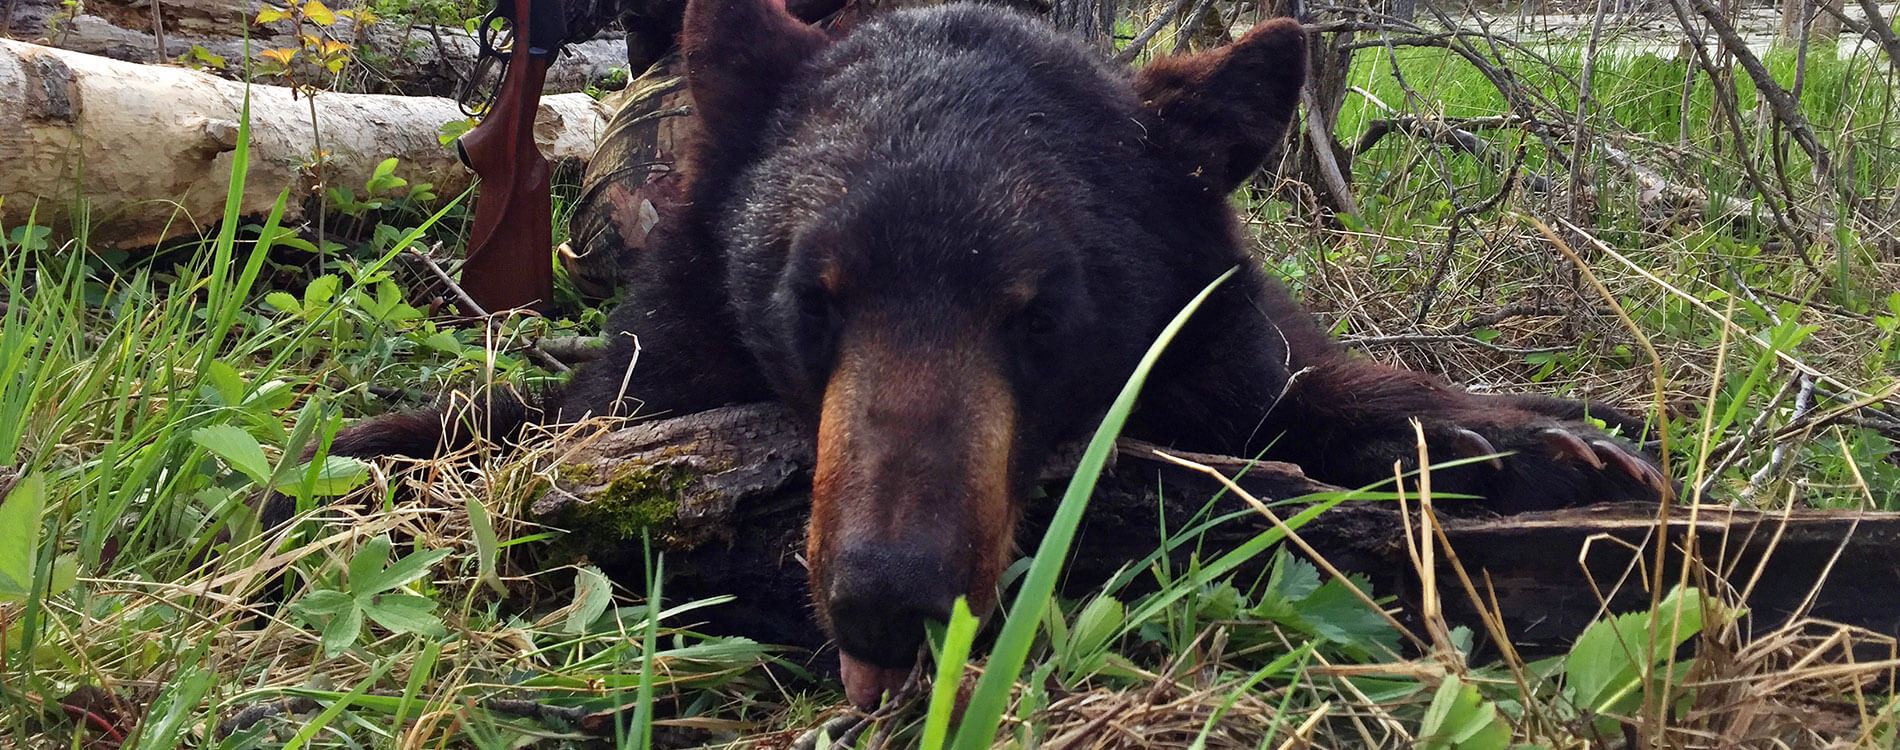 Saskatchewan Waterfowl Hunts - Manitoba Bear Hunts - DOA Outfitters